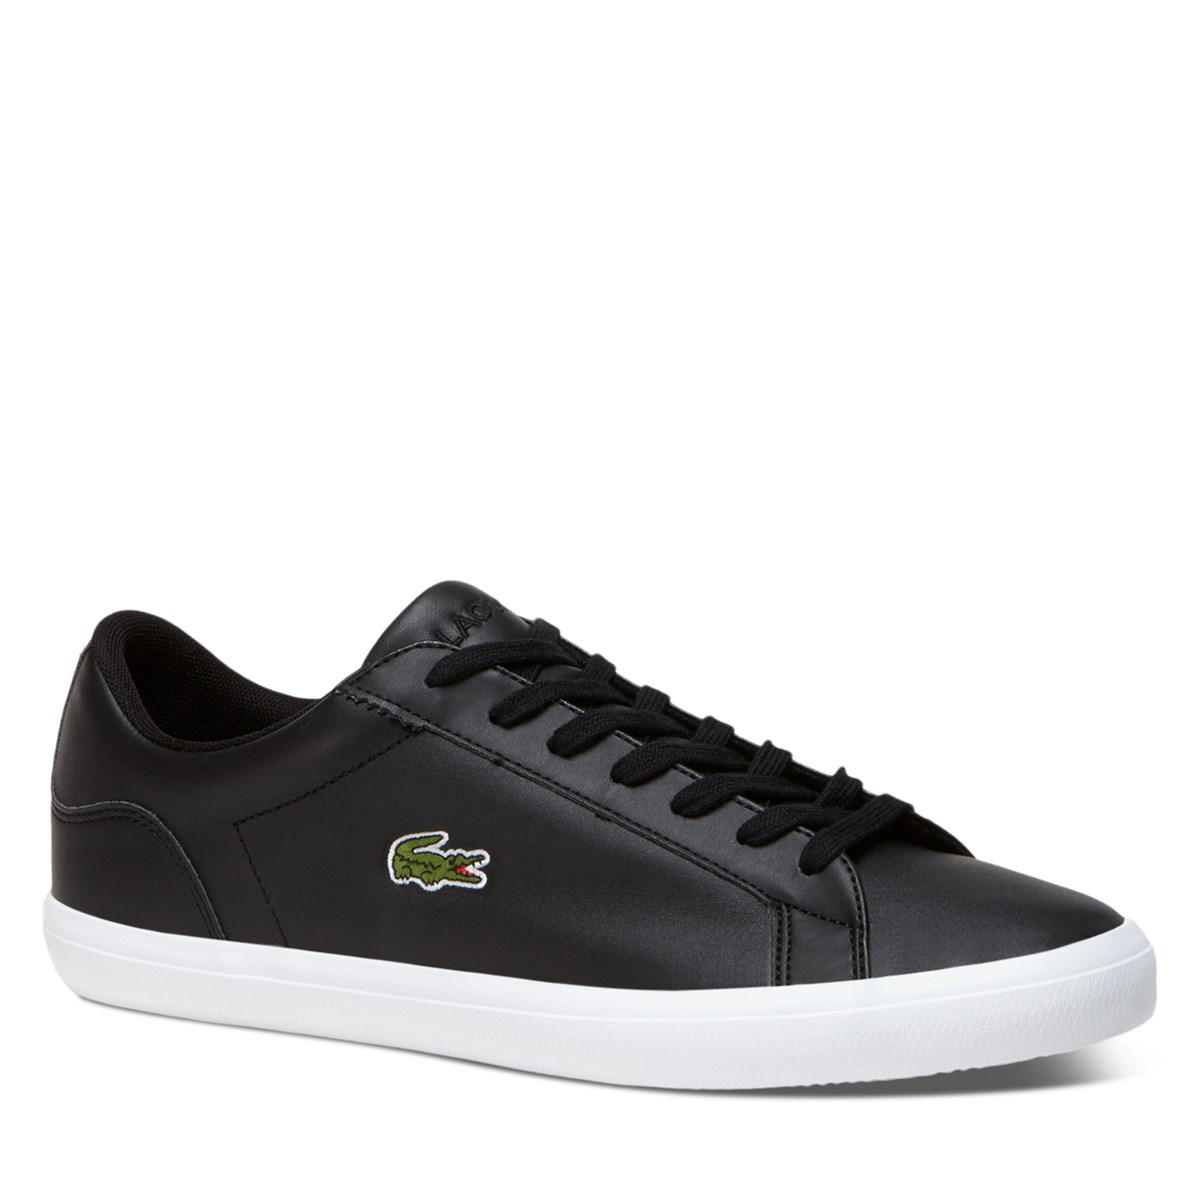 Men's Lerond Sneakers in Black